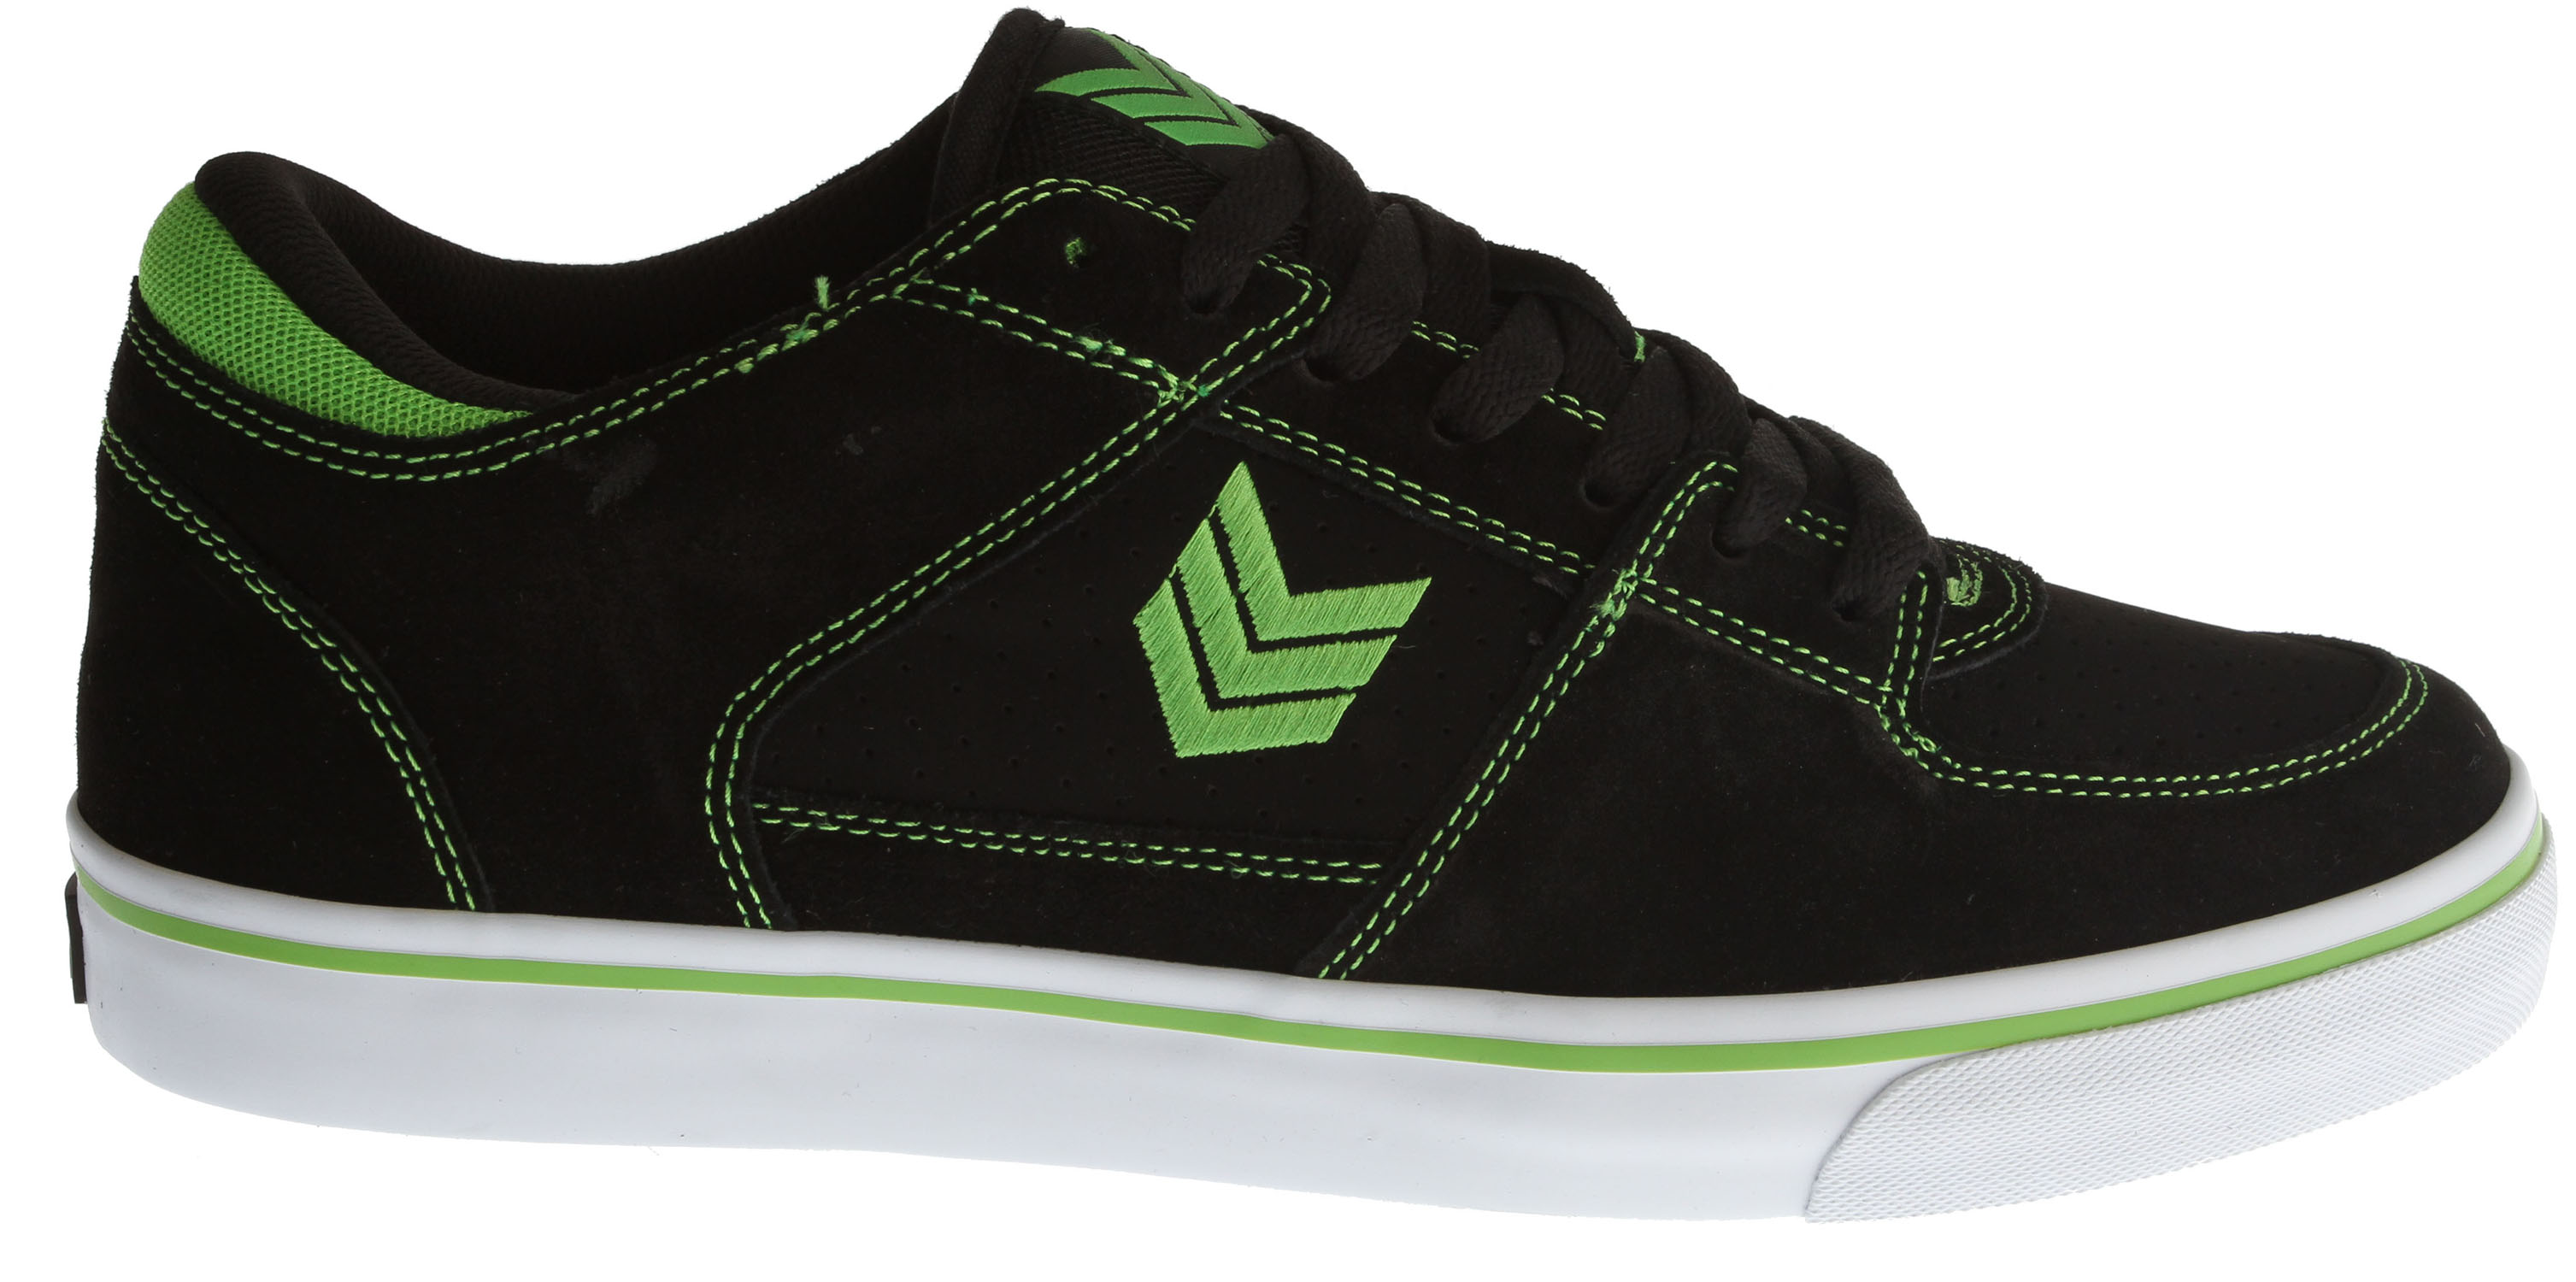 Skateboard Key Features of the Vox Trooper+Relief Skate Shoes: Vulcanized Construction Synthetic and Suede Upper Gum Rubber Outsole I.R.S. Gel System Shocksorb EVA Insoles - $29.95